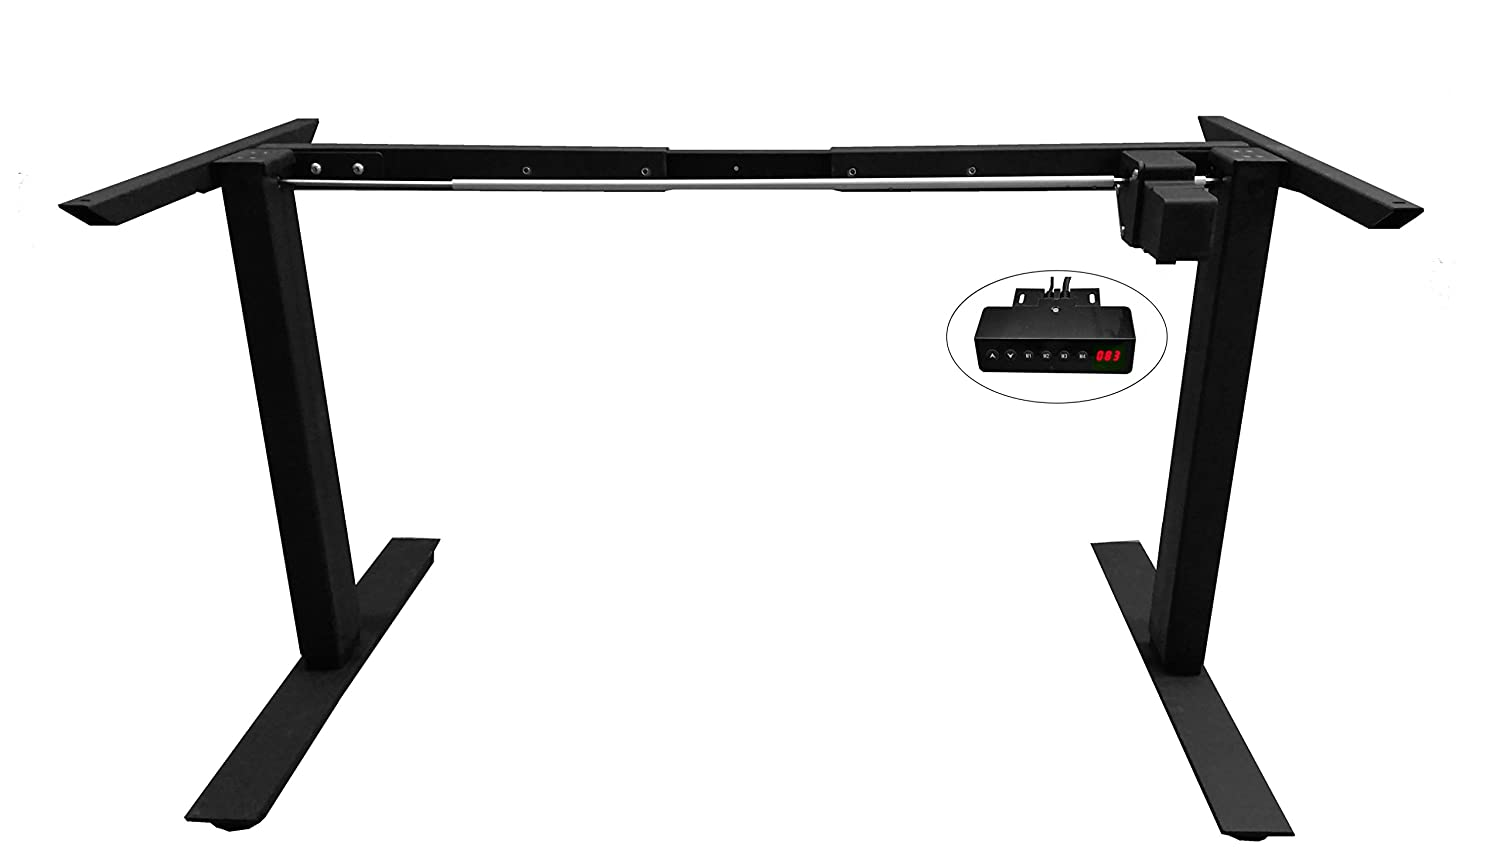 Anthrodesk Sit To Stand Height Adjustable Standing Desk (Programmable Black Single Motor) by Anthro Desk